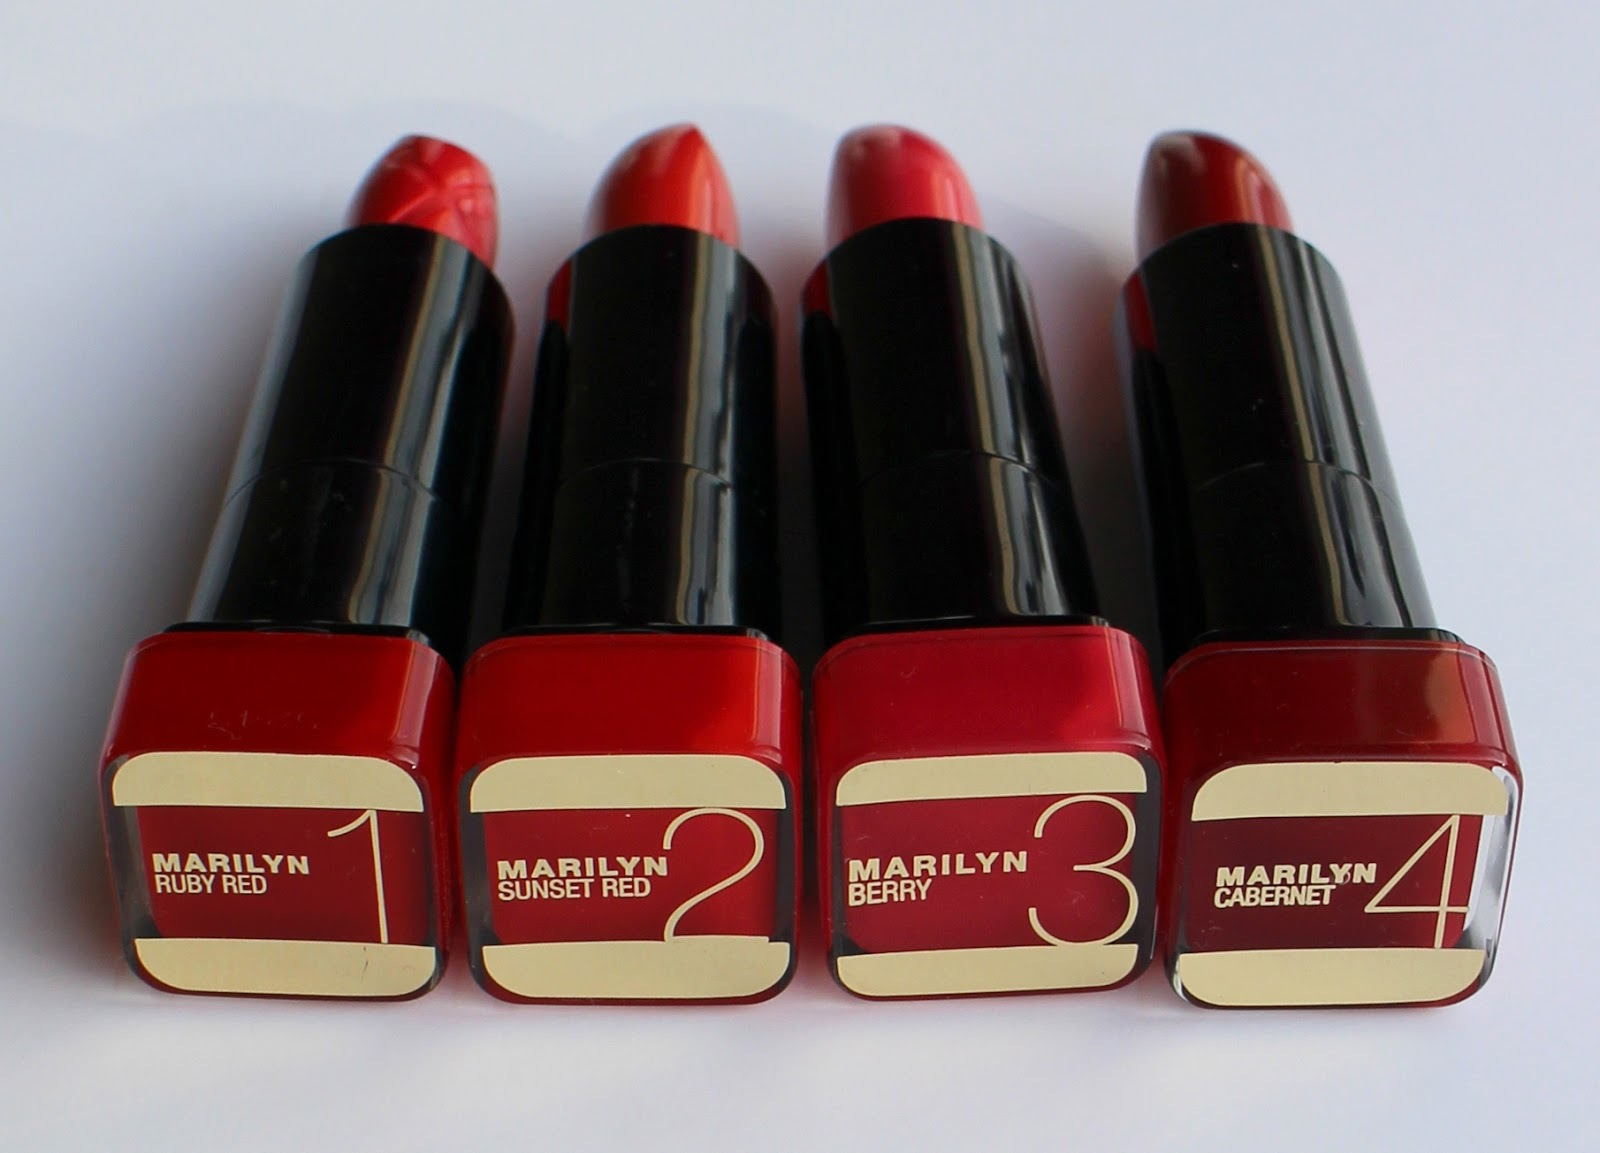 Max Factor Marilyn Monroe Lipsticks Review Amp Swatches